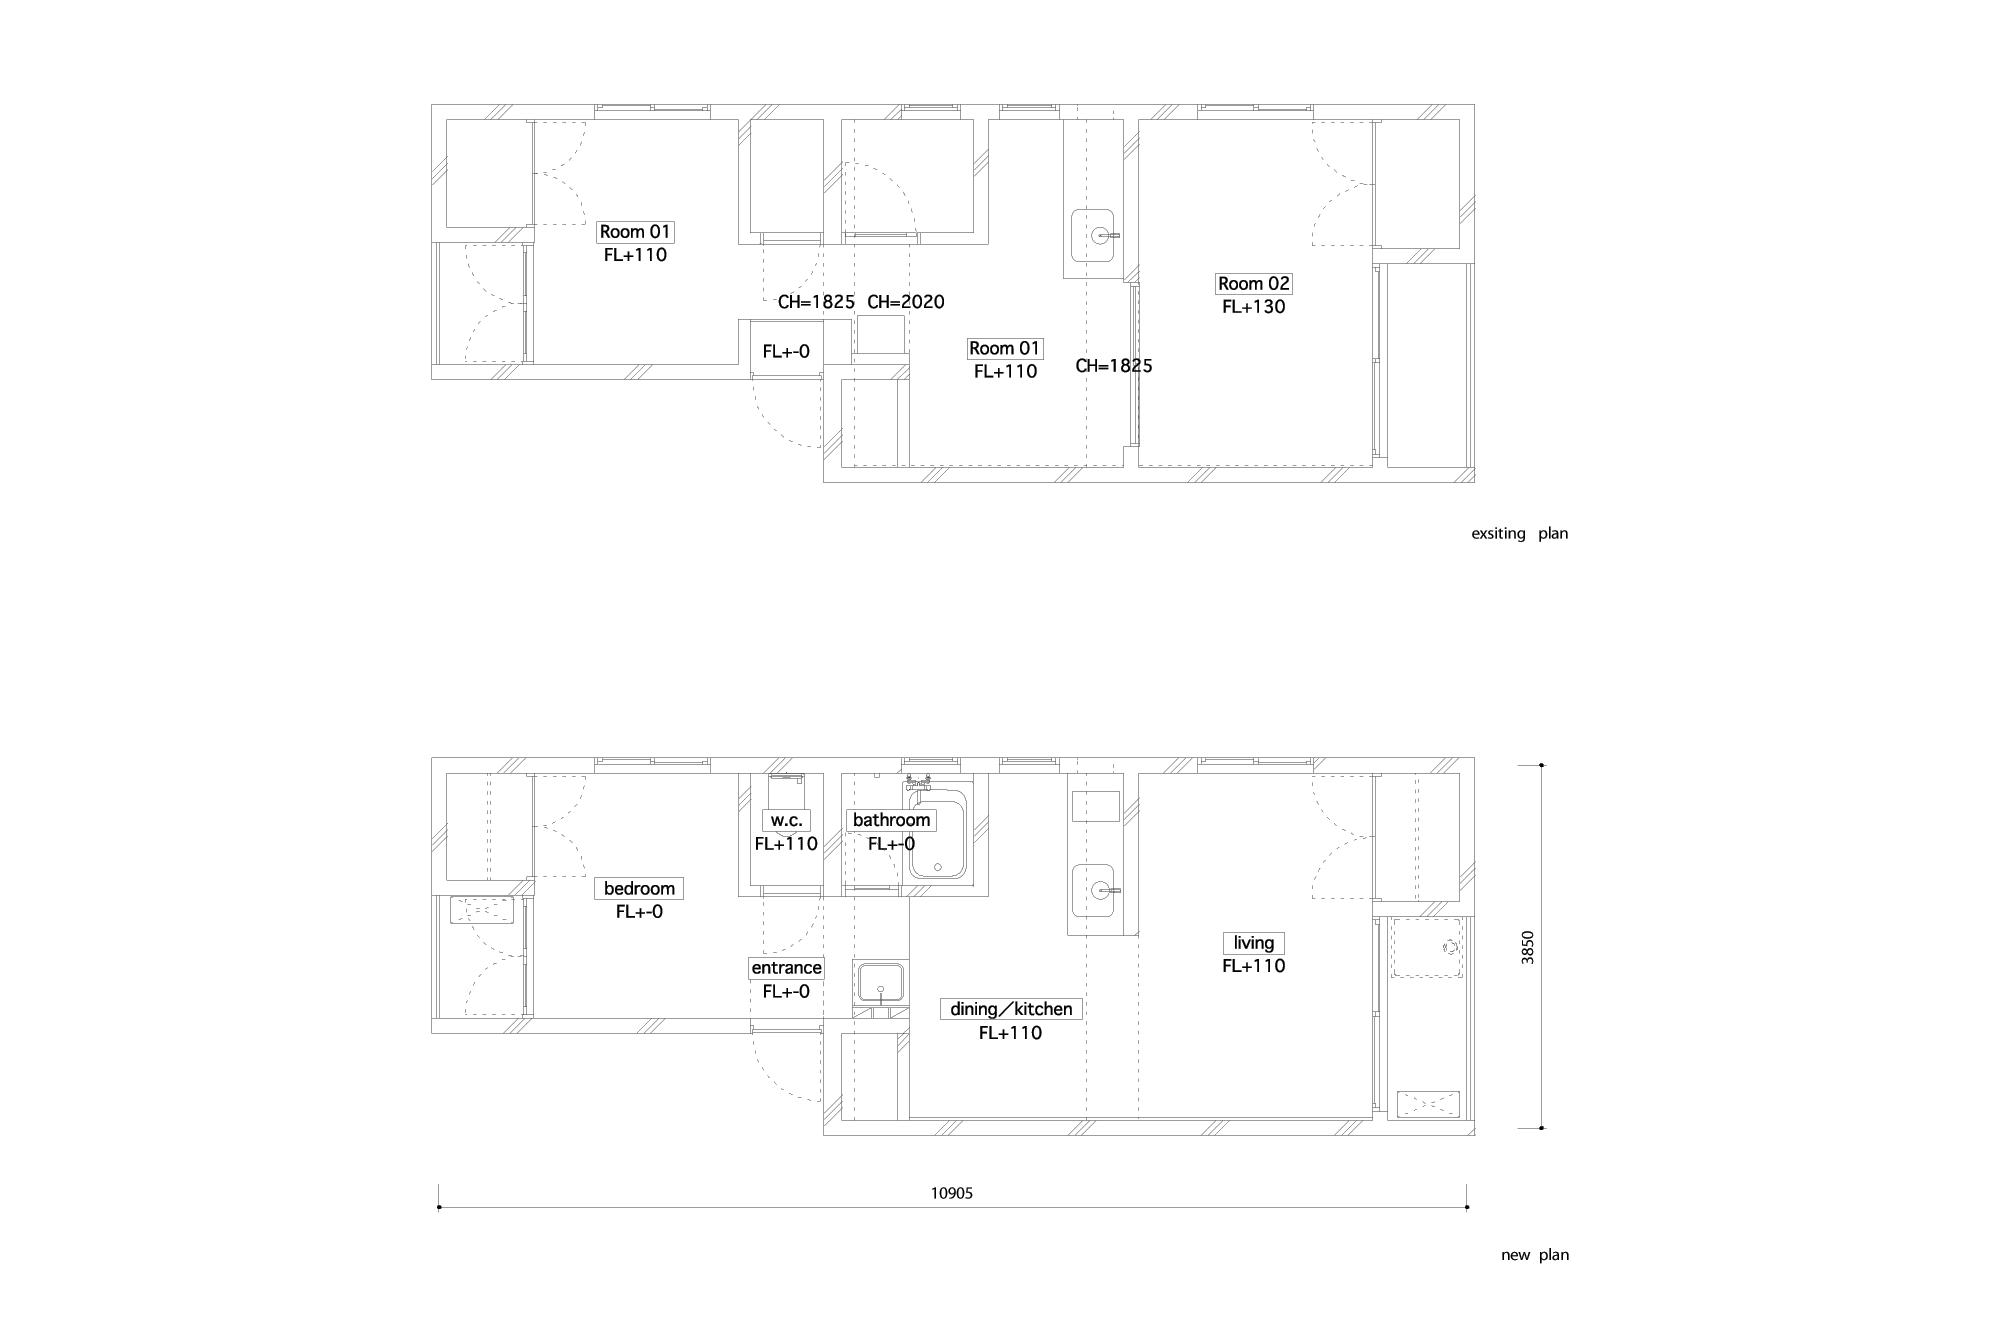 plans before and after renovation